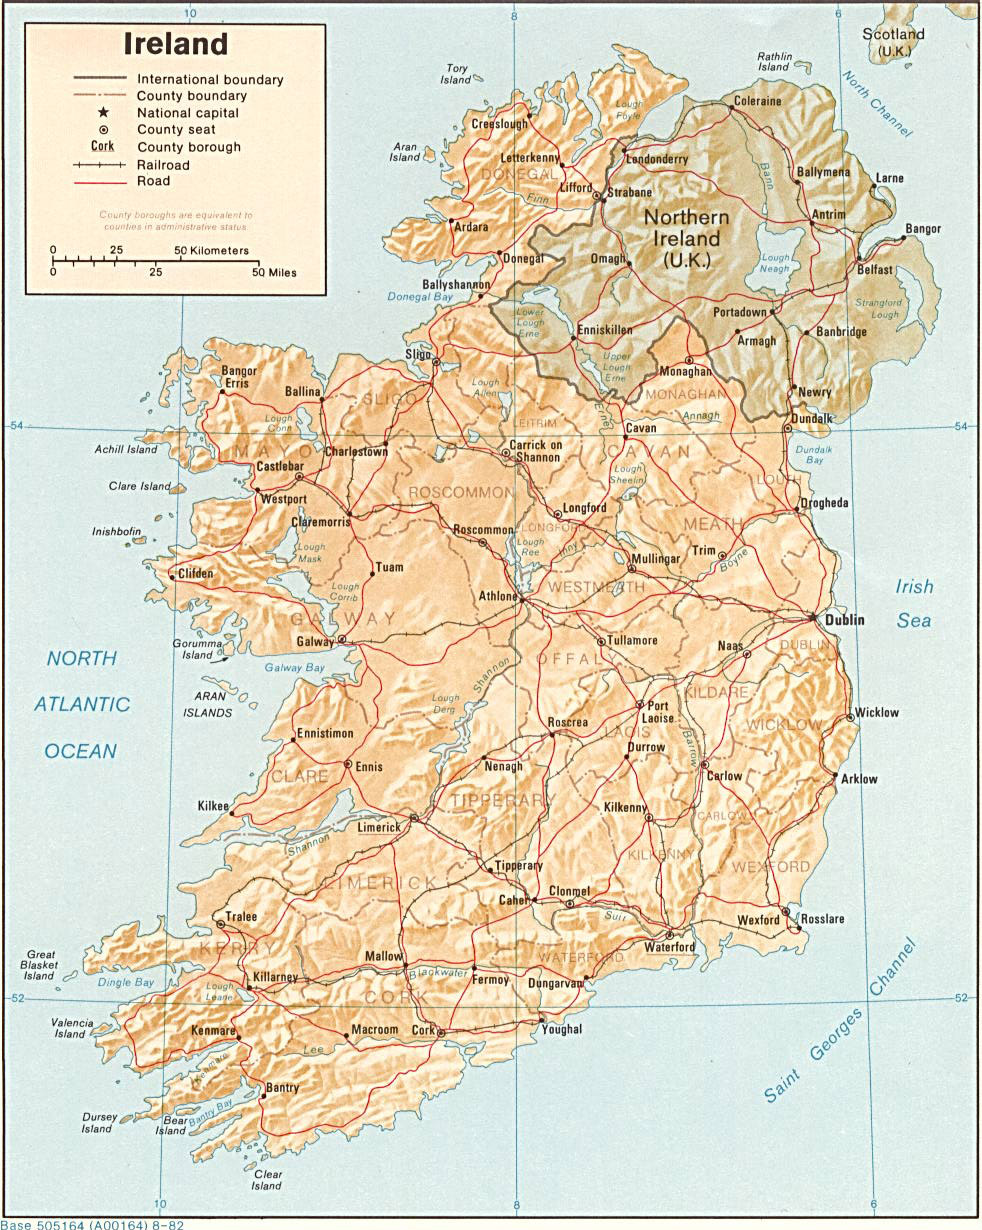 Map Of Ireland Roads.Large Detailed Relief And Political Map Of Ireland With Roads And